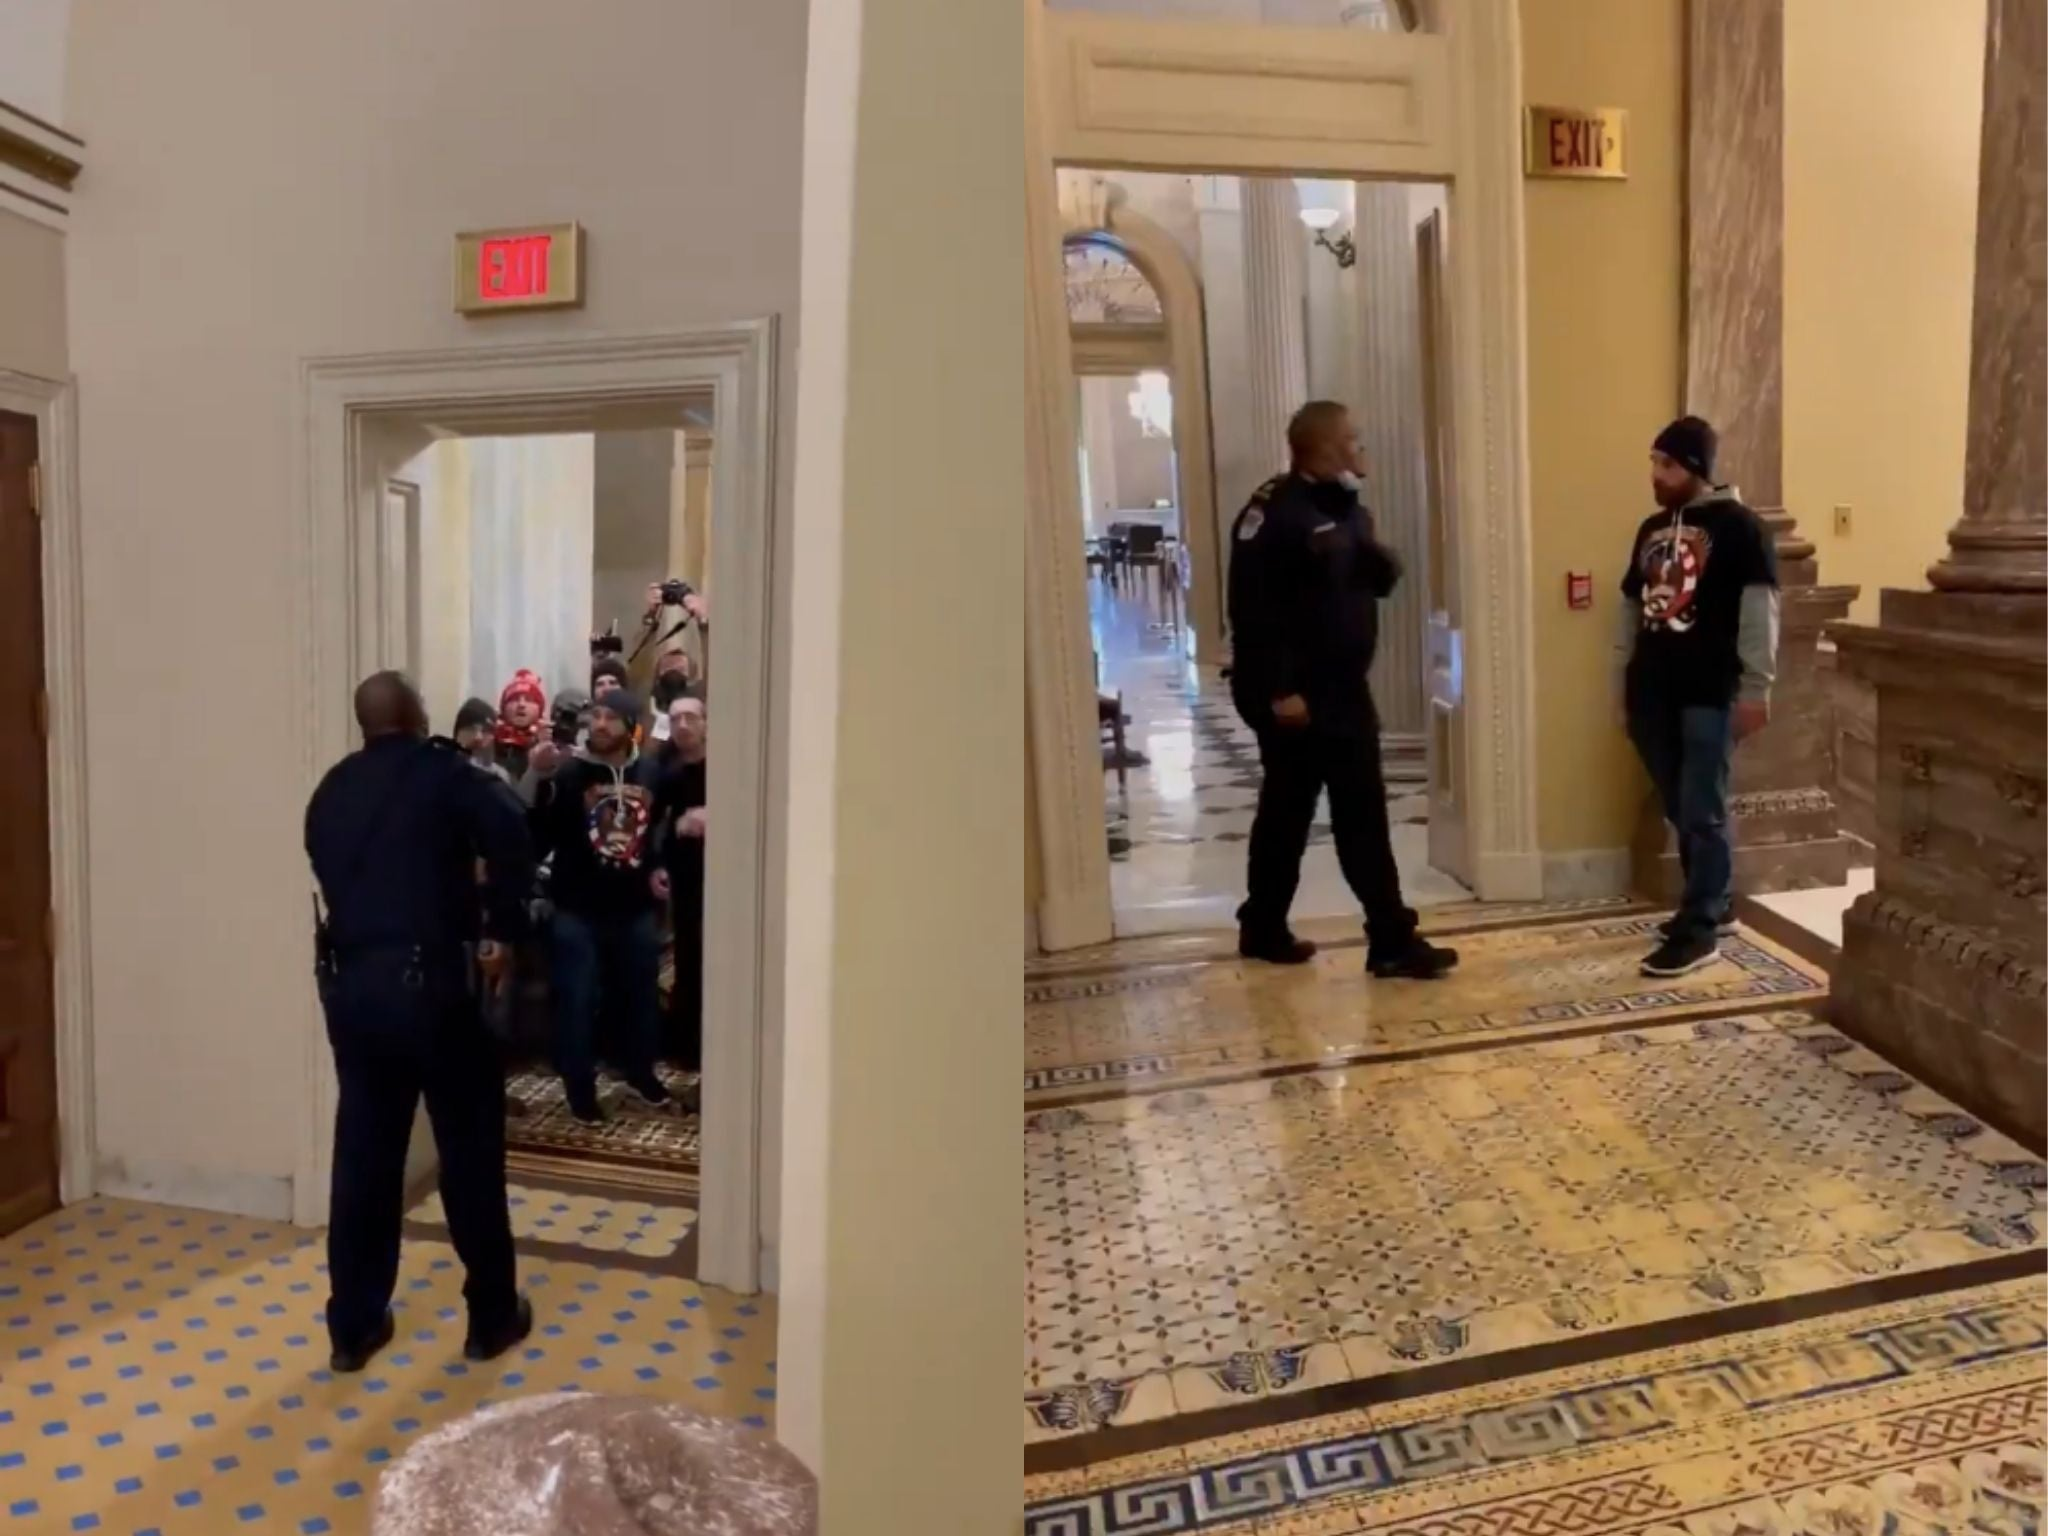 Bill introduced to award Congressional medal to Capitol police officer who led rioters away from chamber